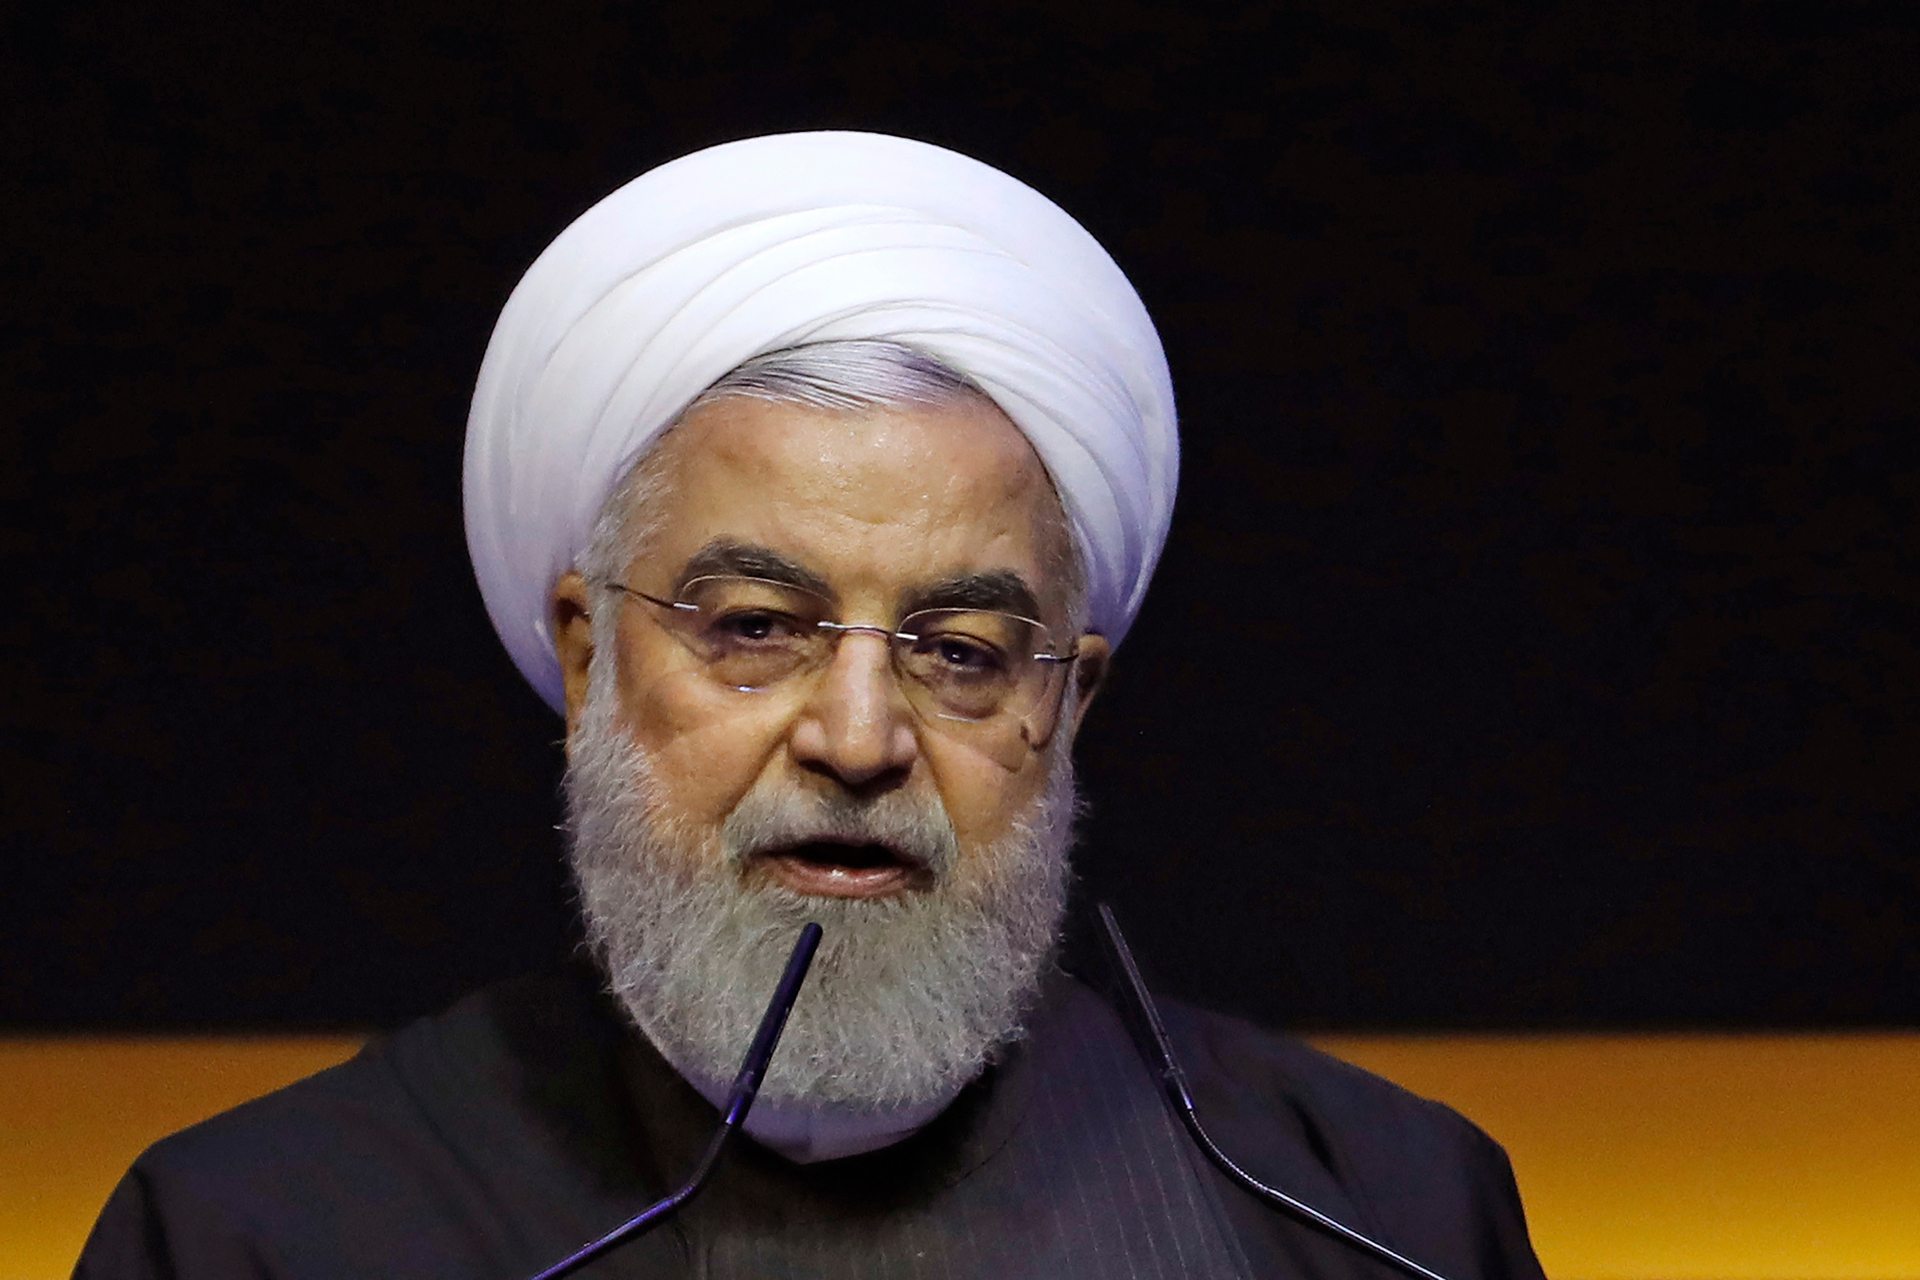 Iran crisis: New Zealand urged to take leadership role in peace dialogue